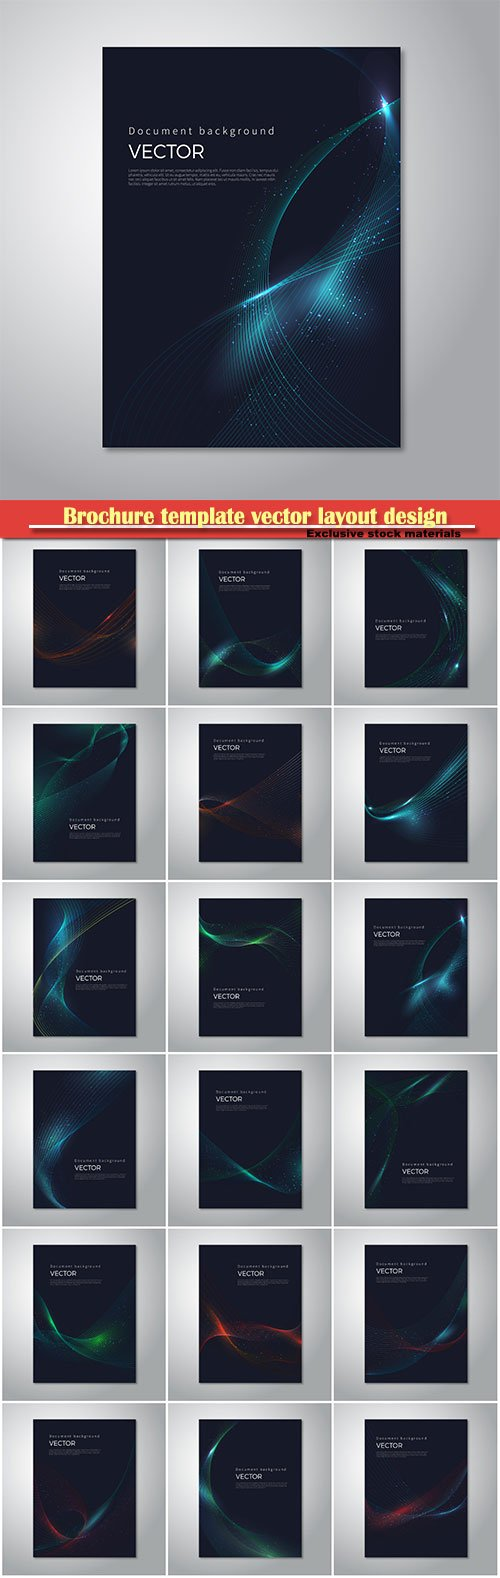 Brochure template vector layout design, abstract backgrounds